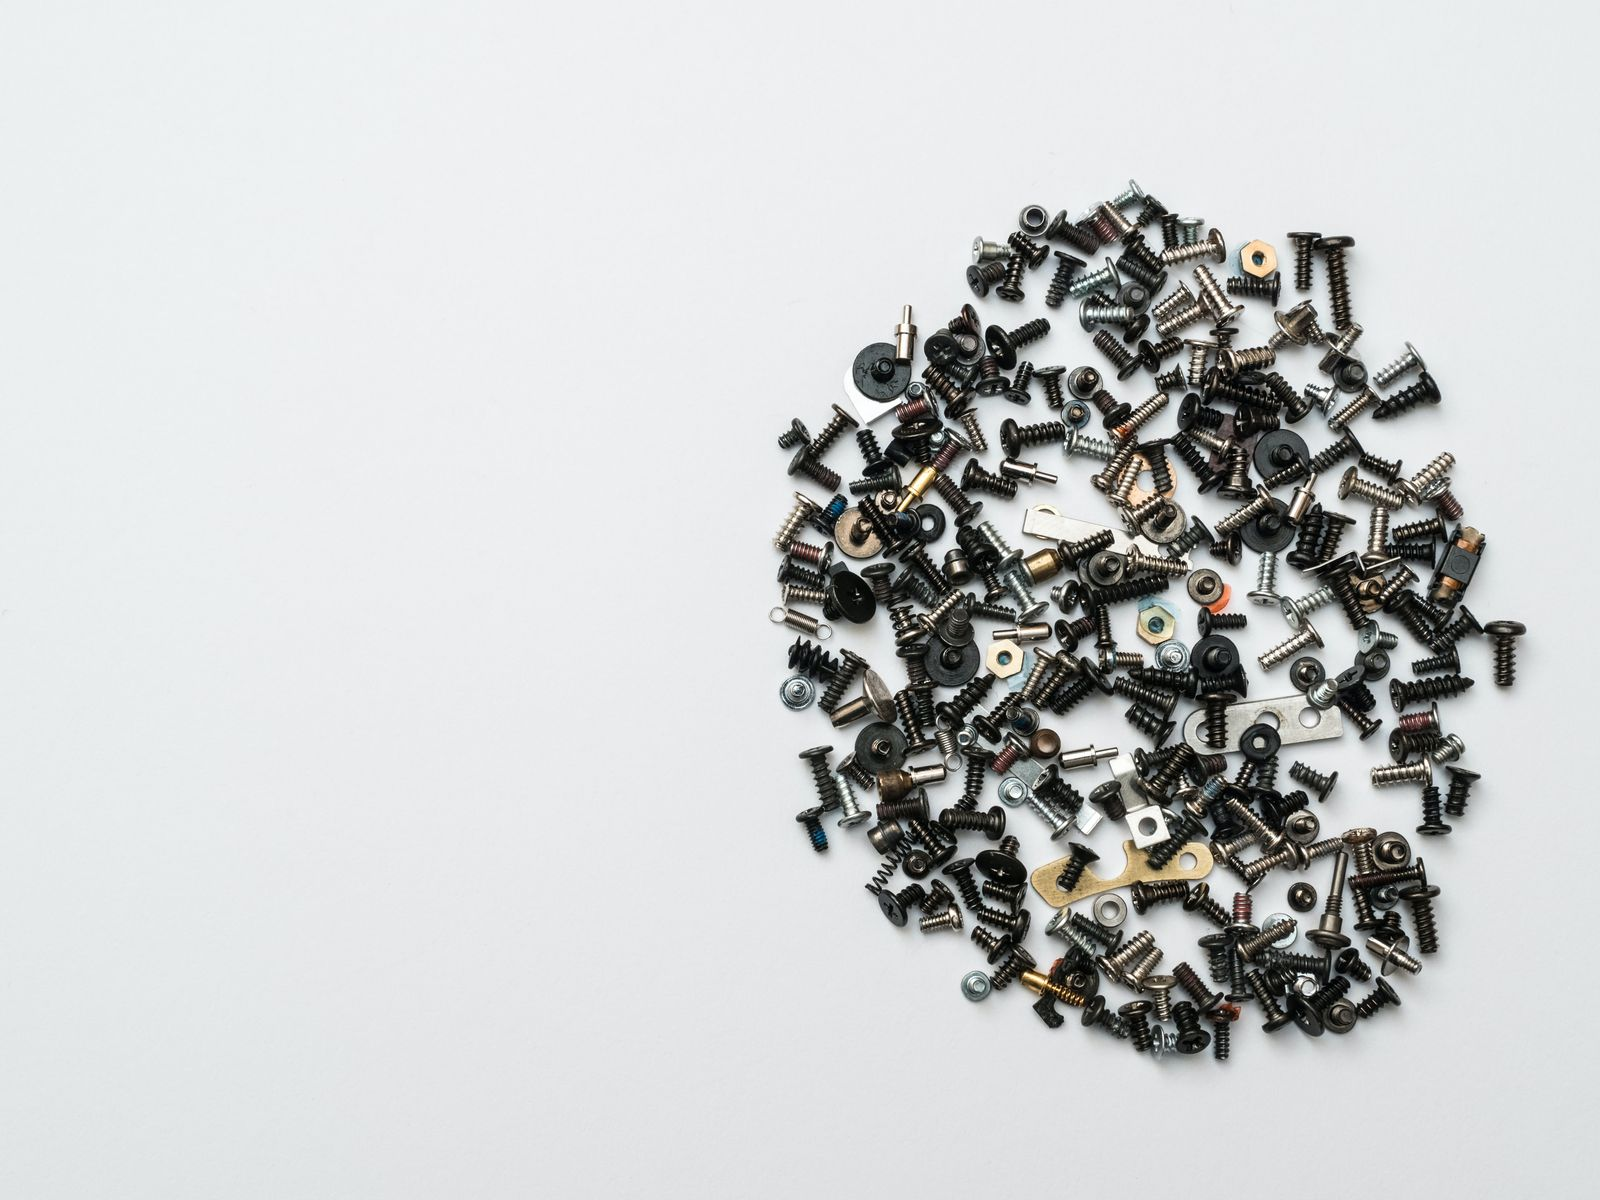 Screws and materials in a white background